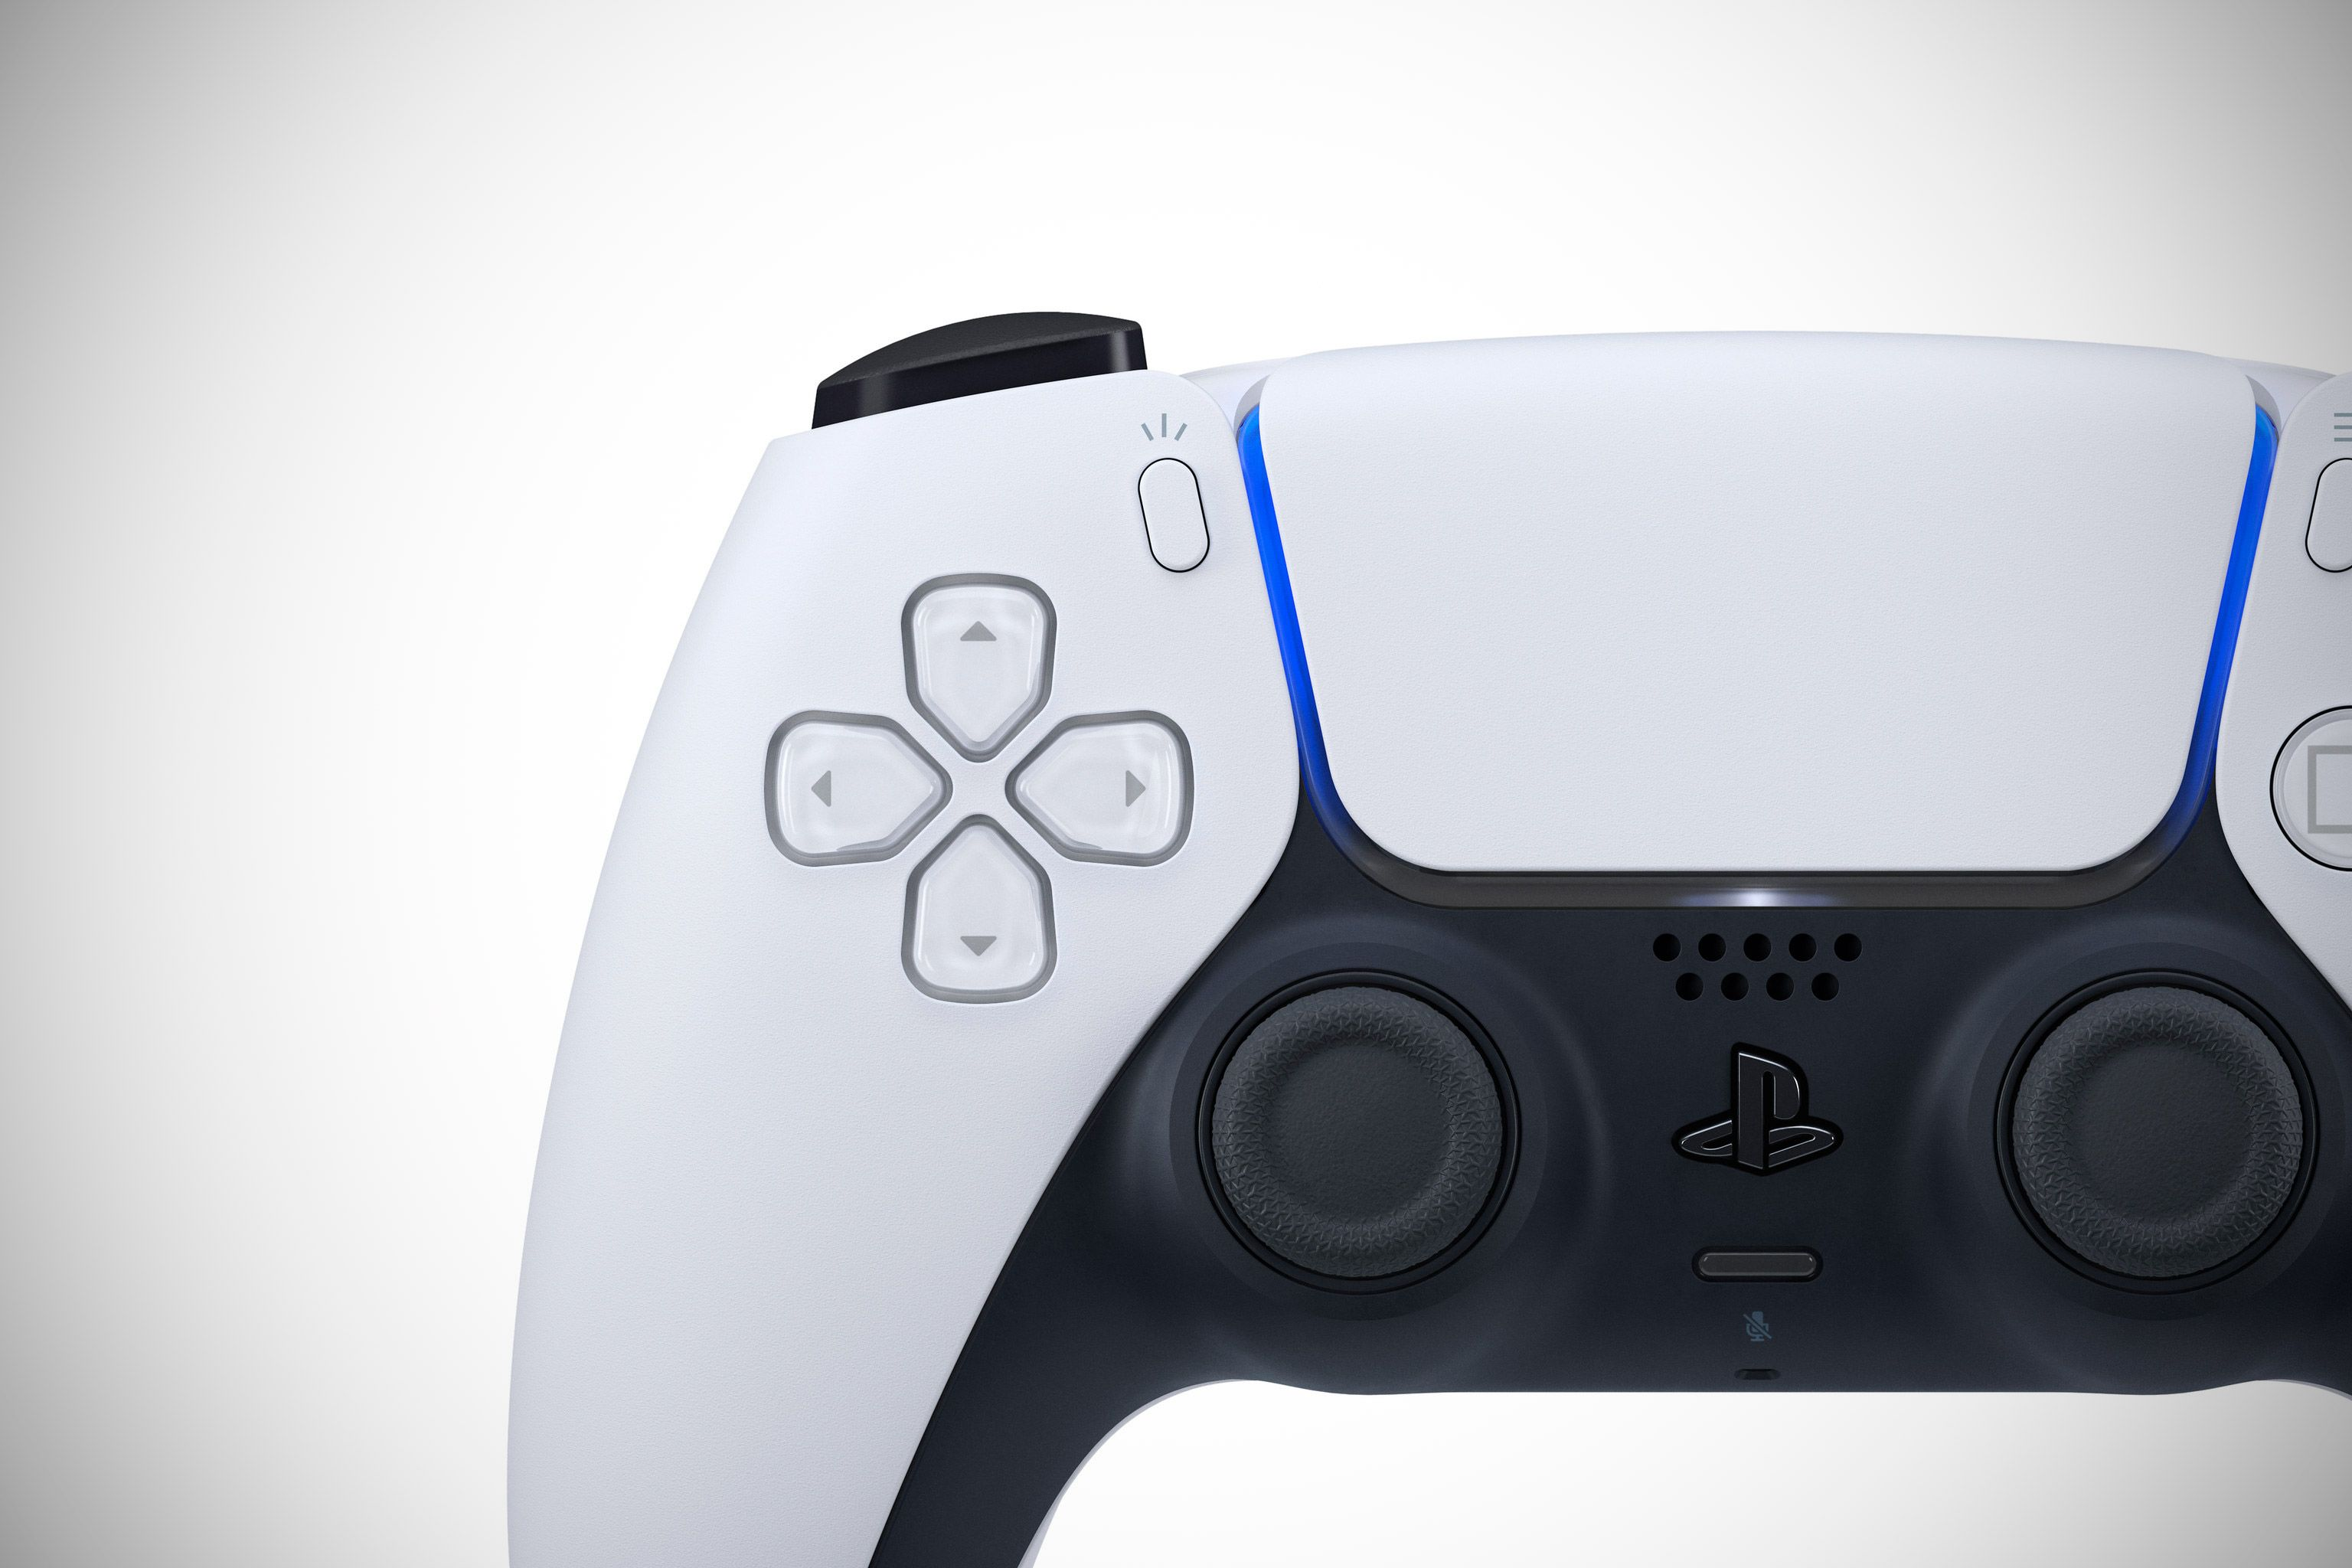 Sony Officially Reveals Ps5 Controller In 2020 Sony Playstation 5 Playstation